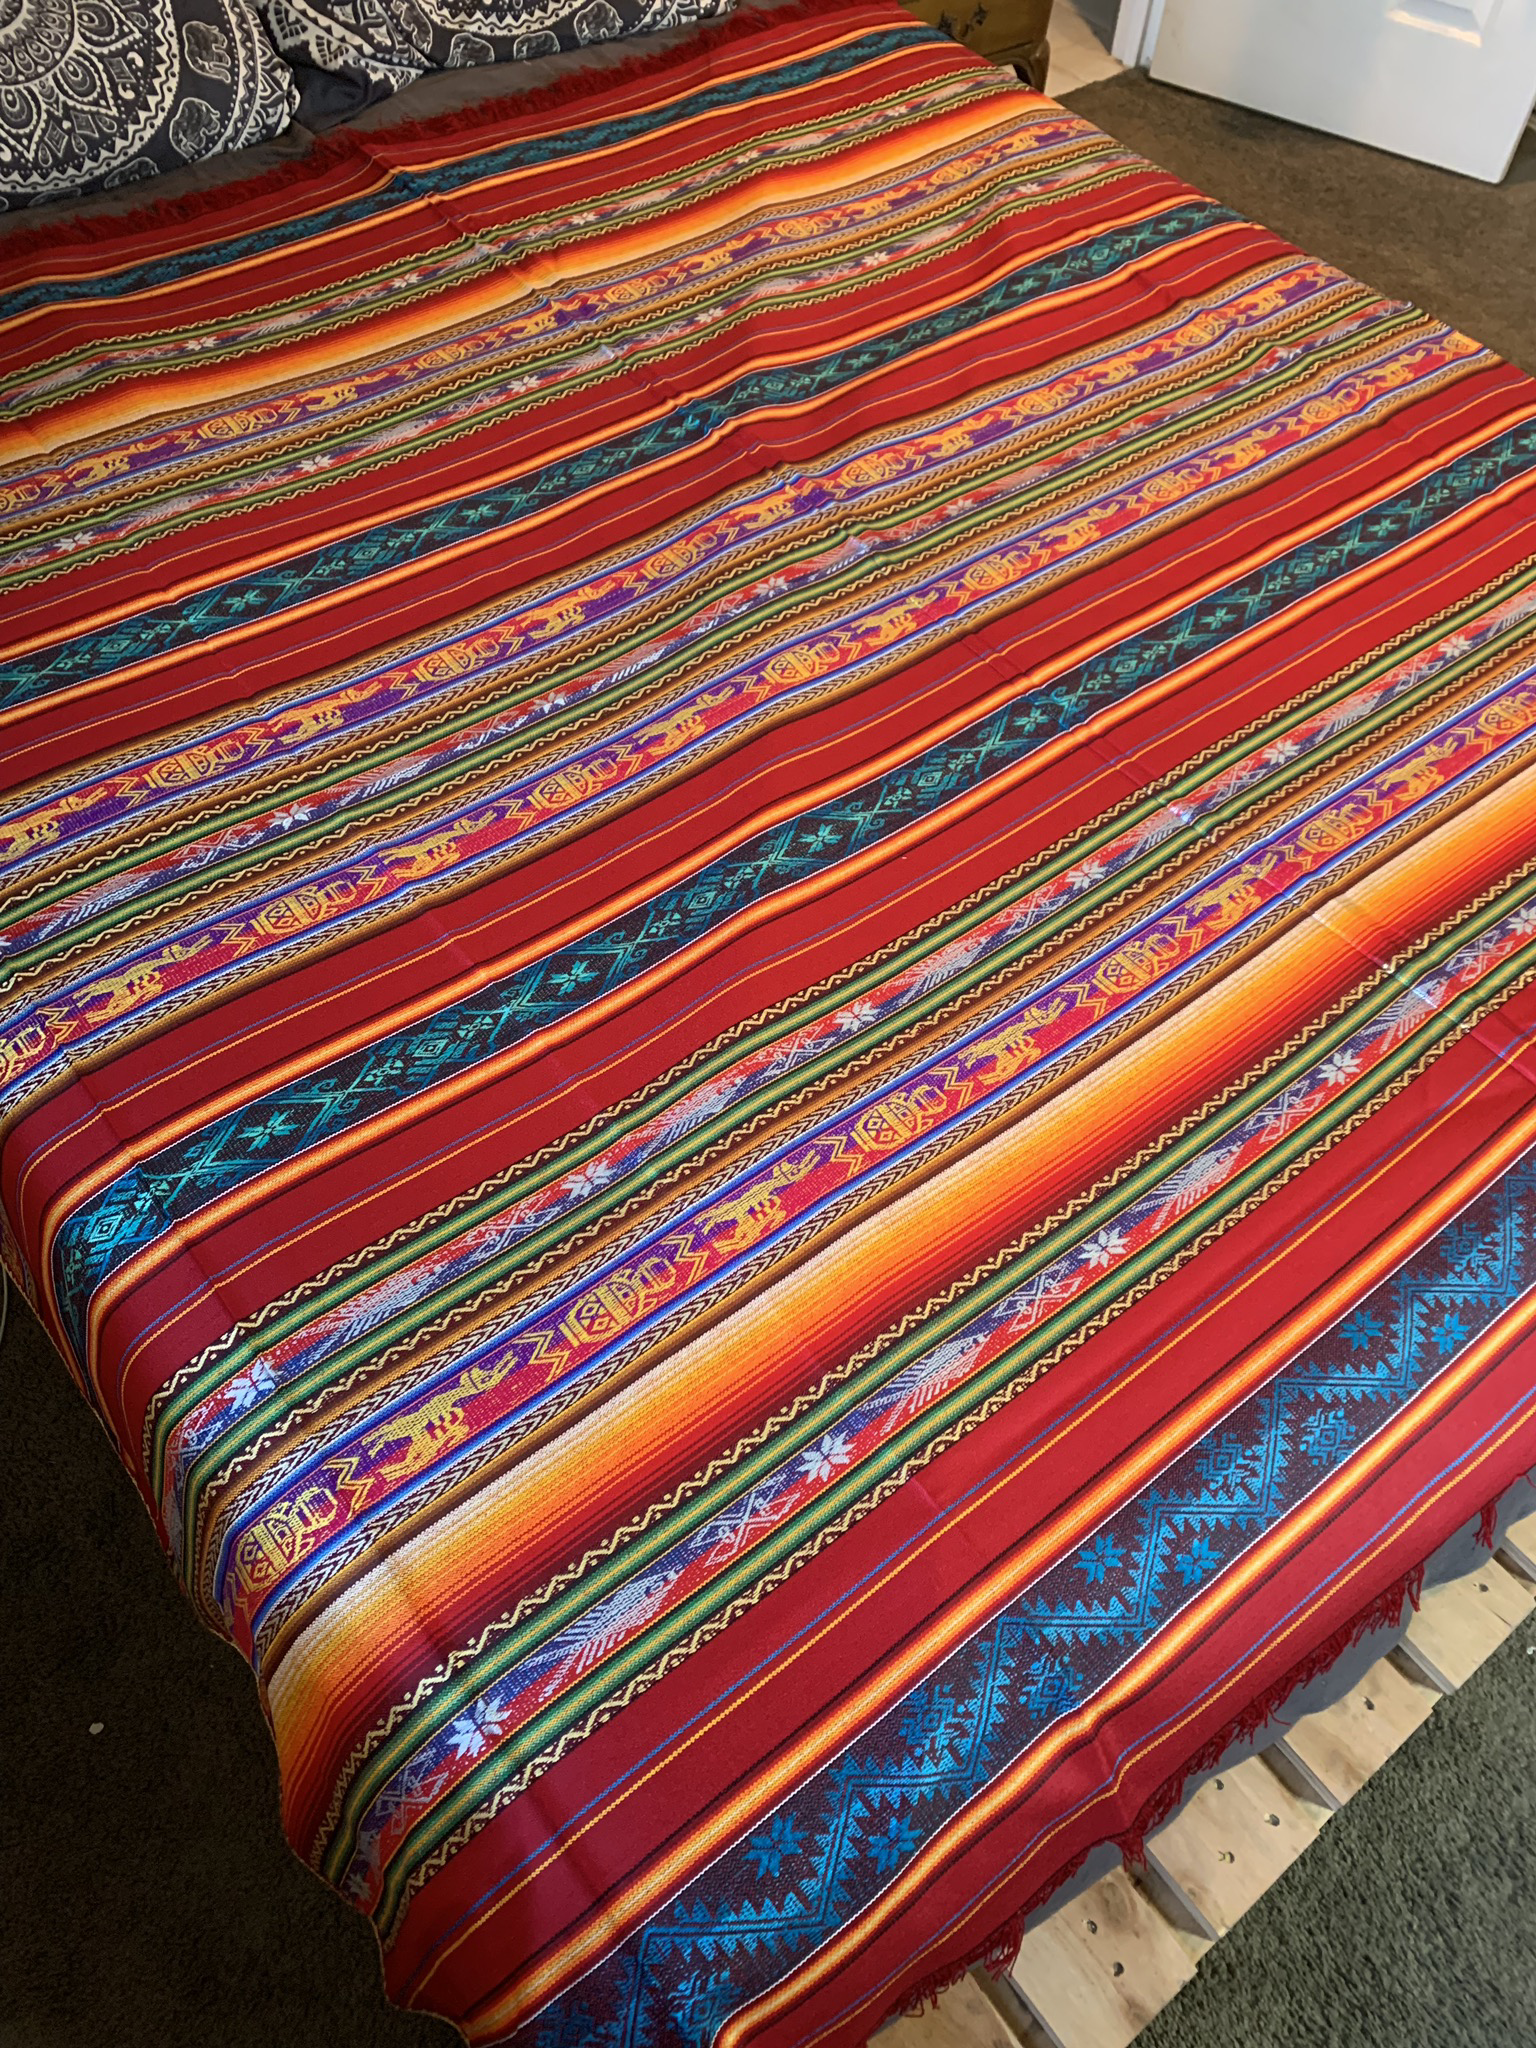 Large Red Mexican Tablecloth